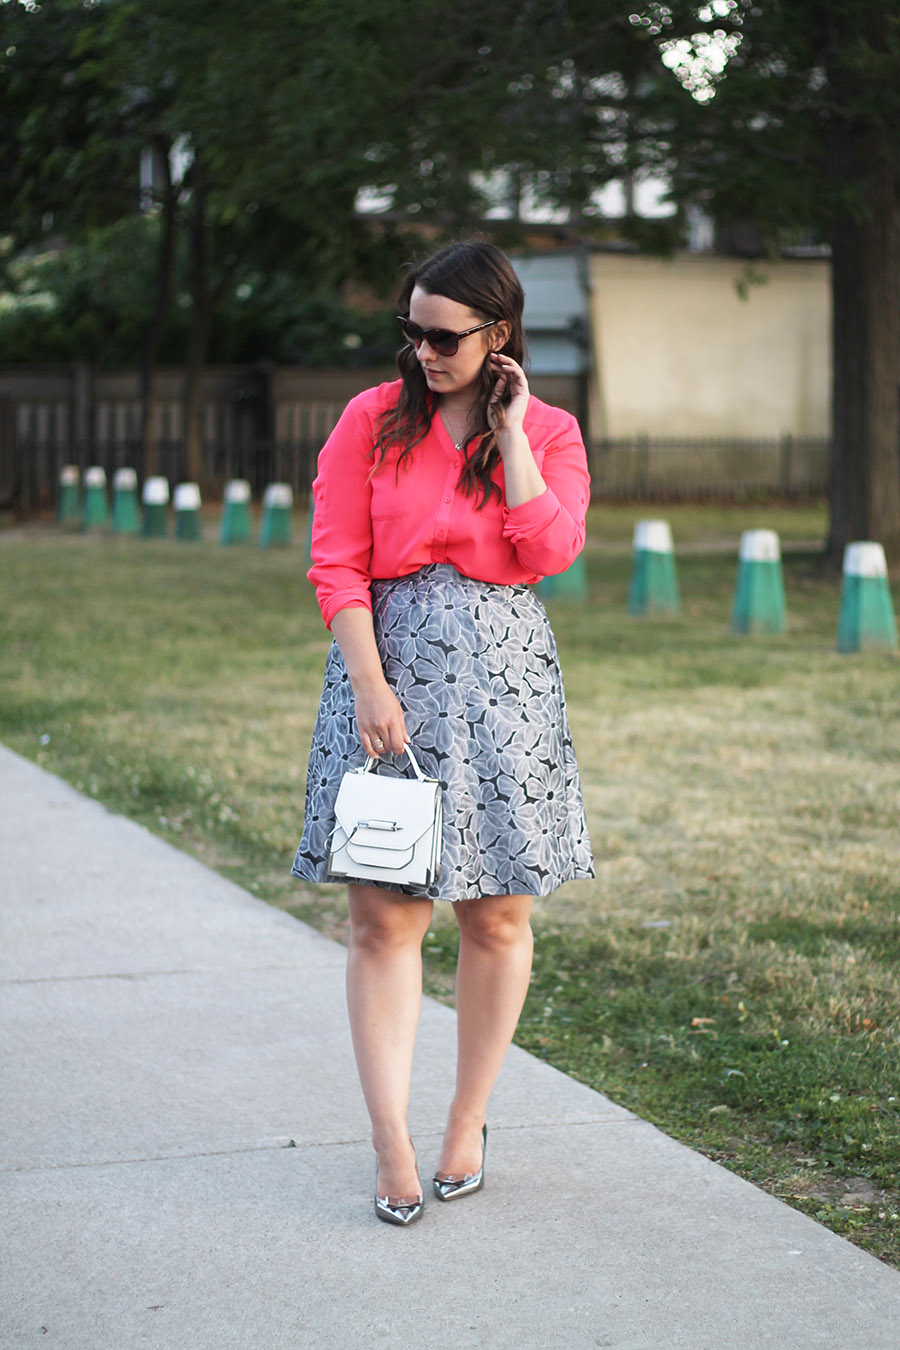 fashion-style-inspiration-outfit-ideas-toronto-blogger-a-side-of-vogue